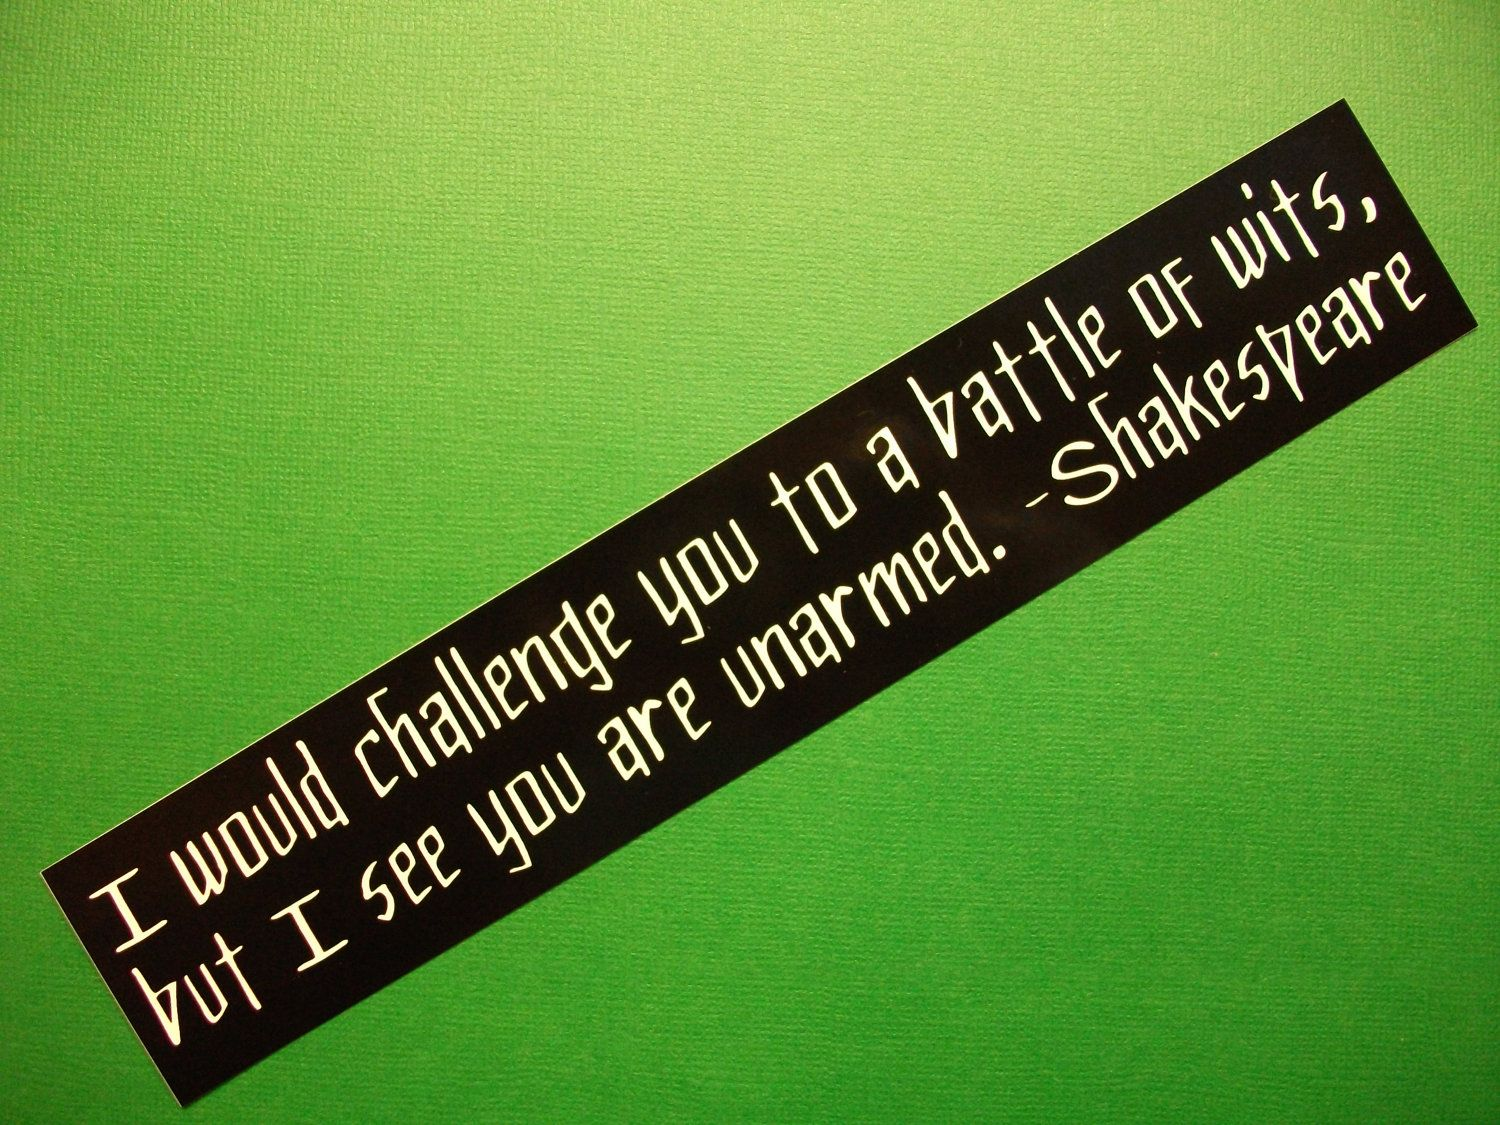 Shakespeare- One of my favorite quotes of Shakespeare :)